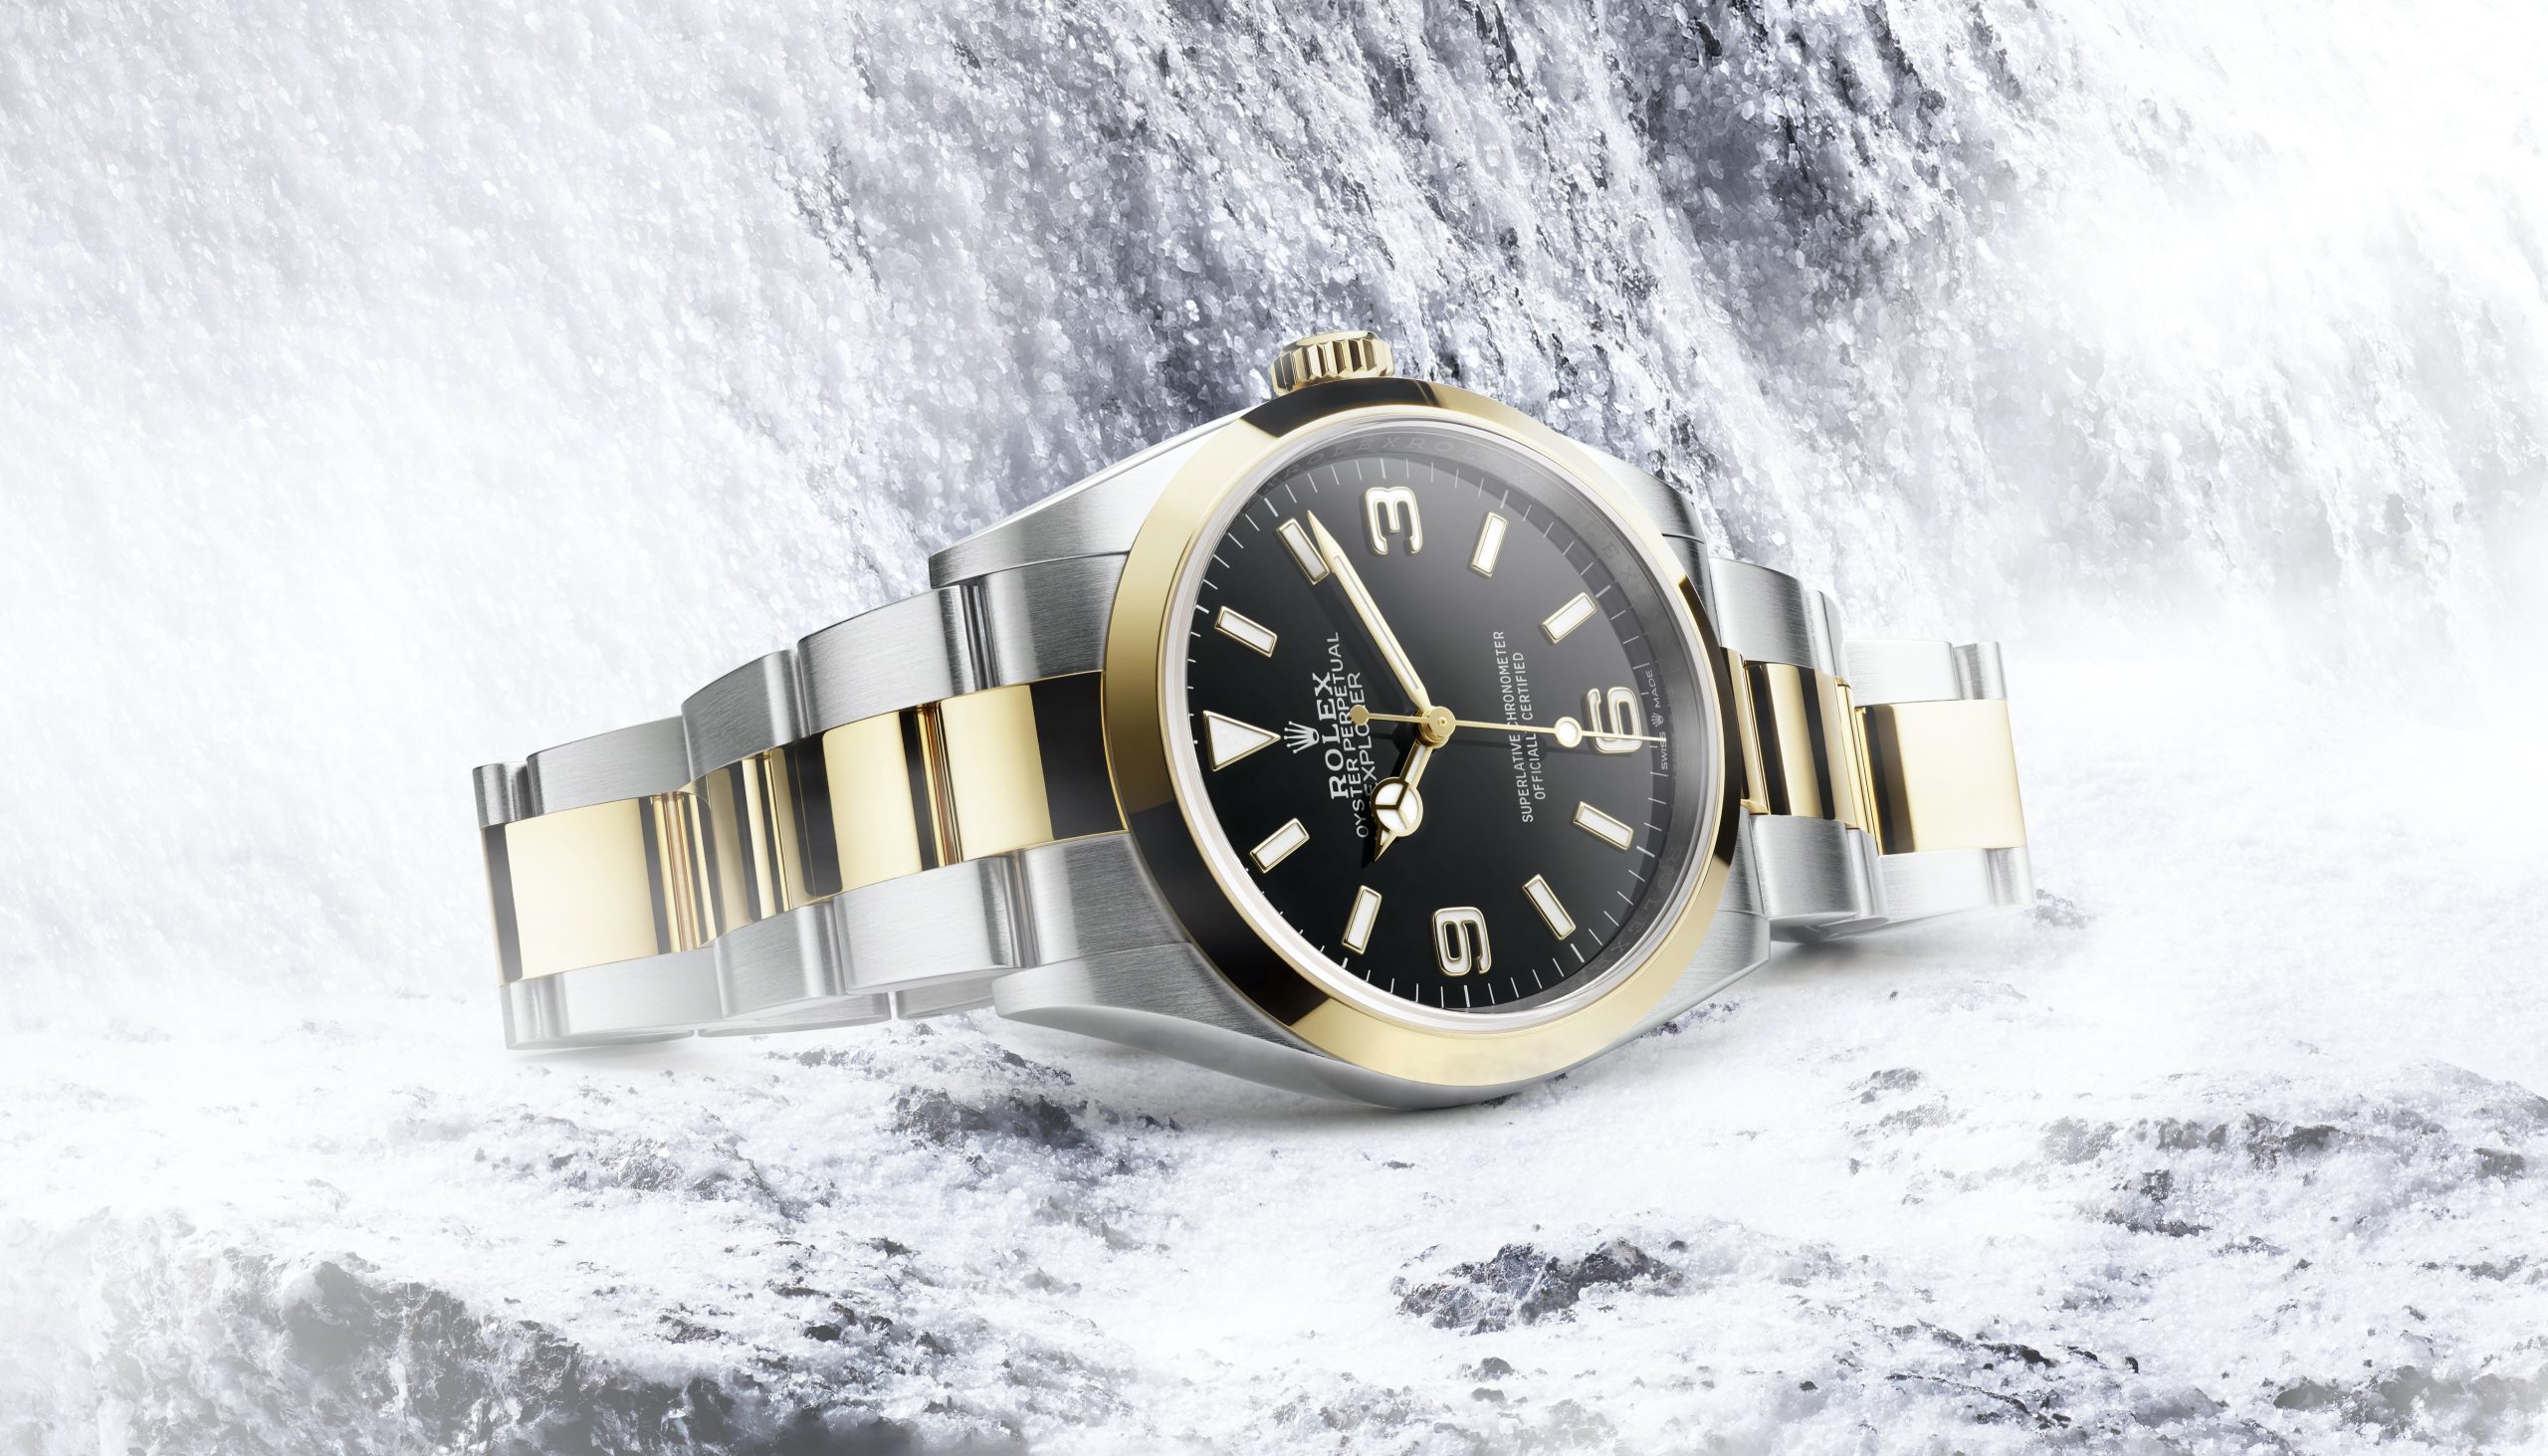 Watches and Wonders 2021: Rolex introduces new versions of the Oyster Perpetual Explorer